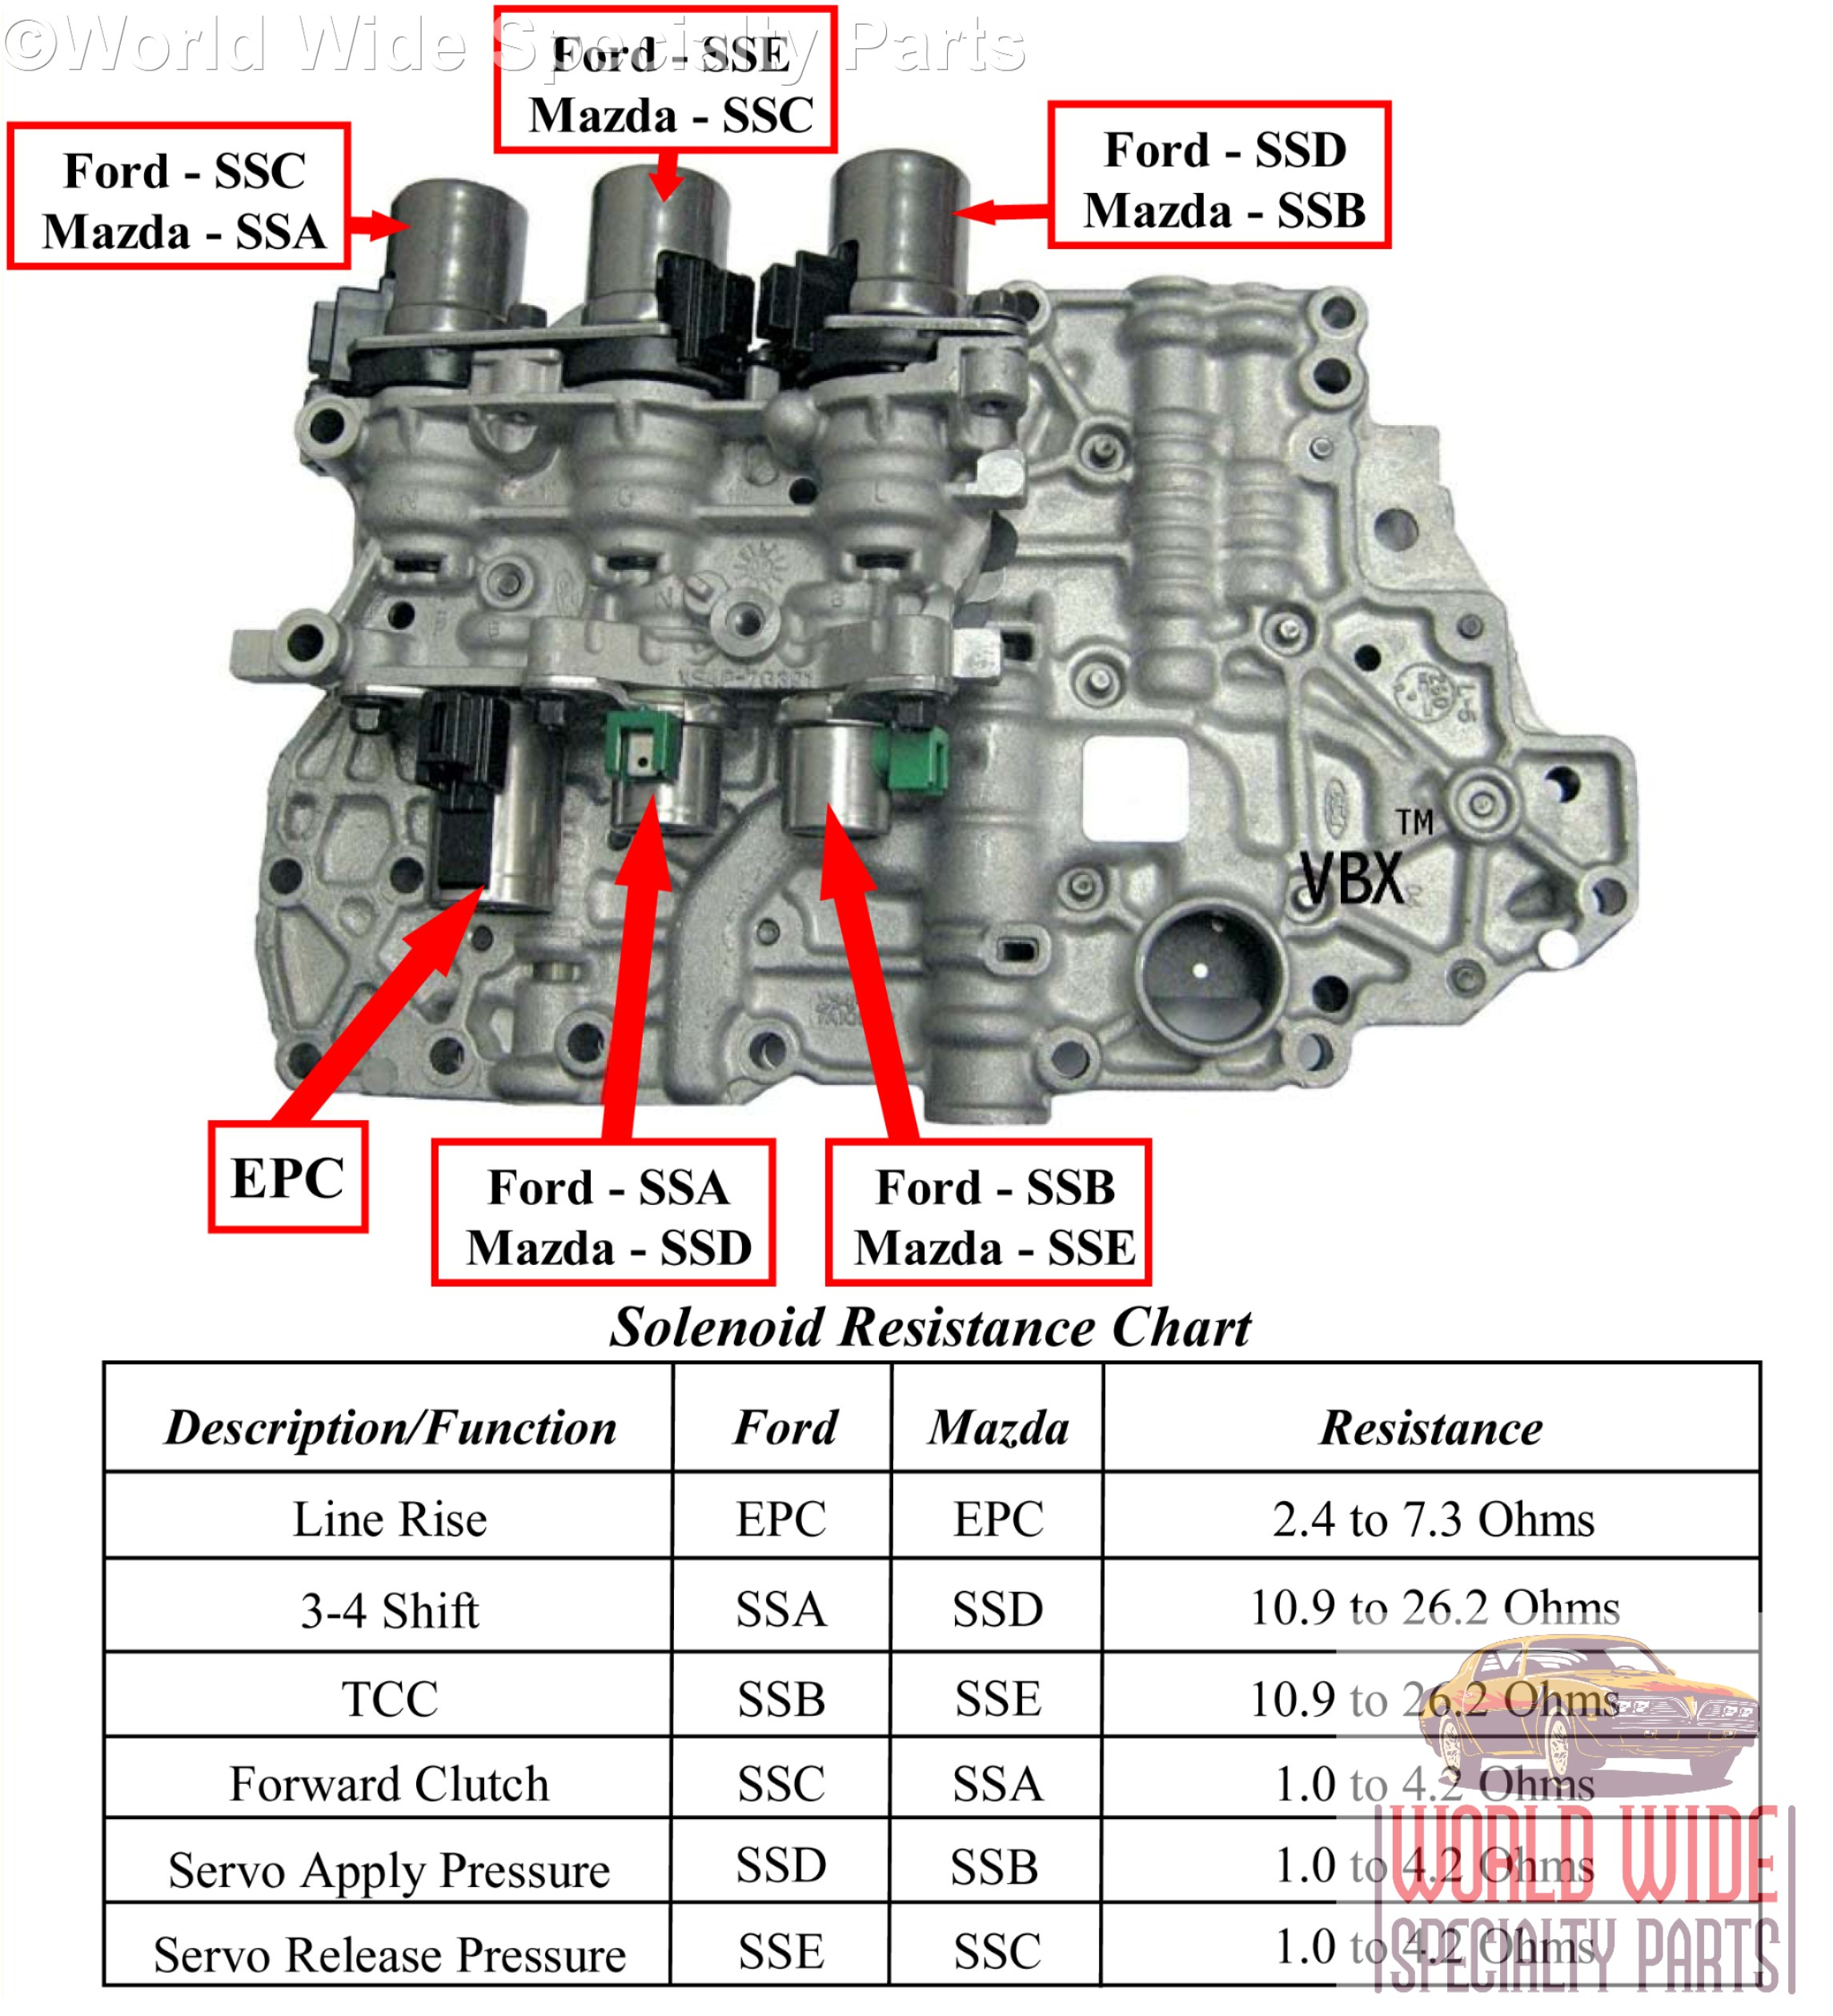 2003 zx5 2 3 auto 1 2 shift problems ford focus forum, ford focus 5R55E Solenoid Diagram